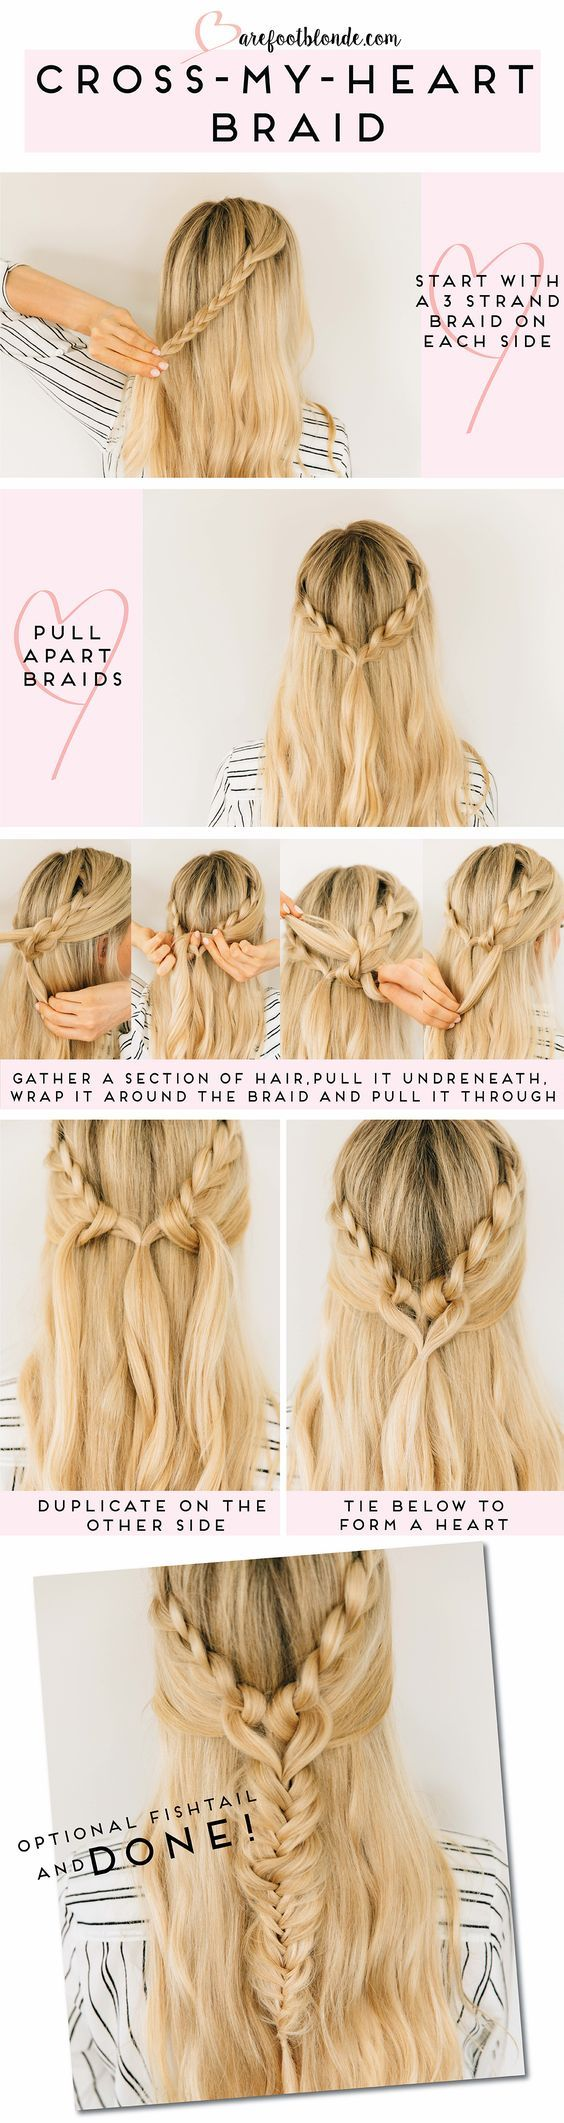 Sensational 1000 Ideas About Easy Hairstyles On Pinterest Hairstyles Hair Short Hairstyles Gunalazisus